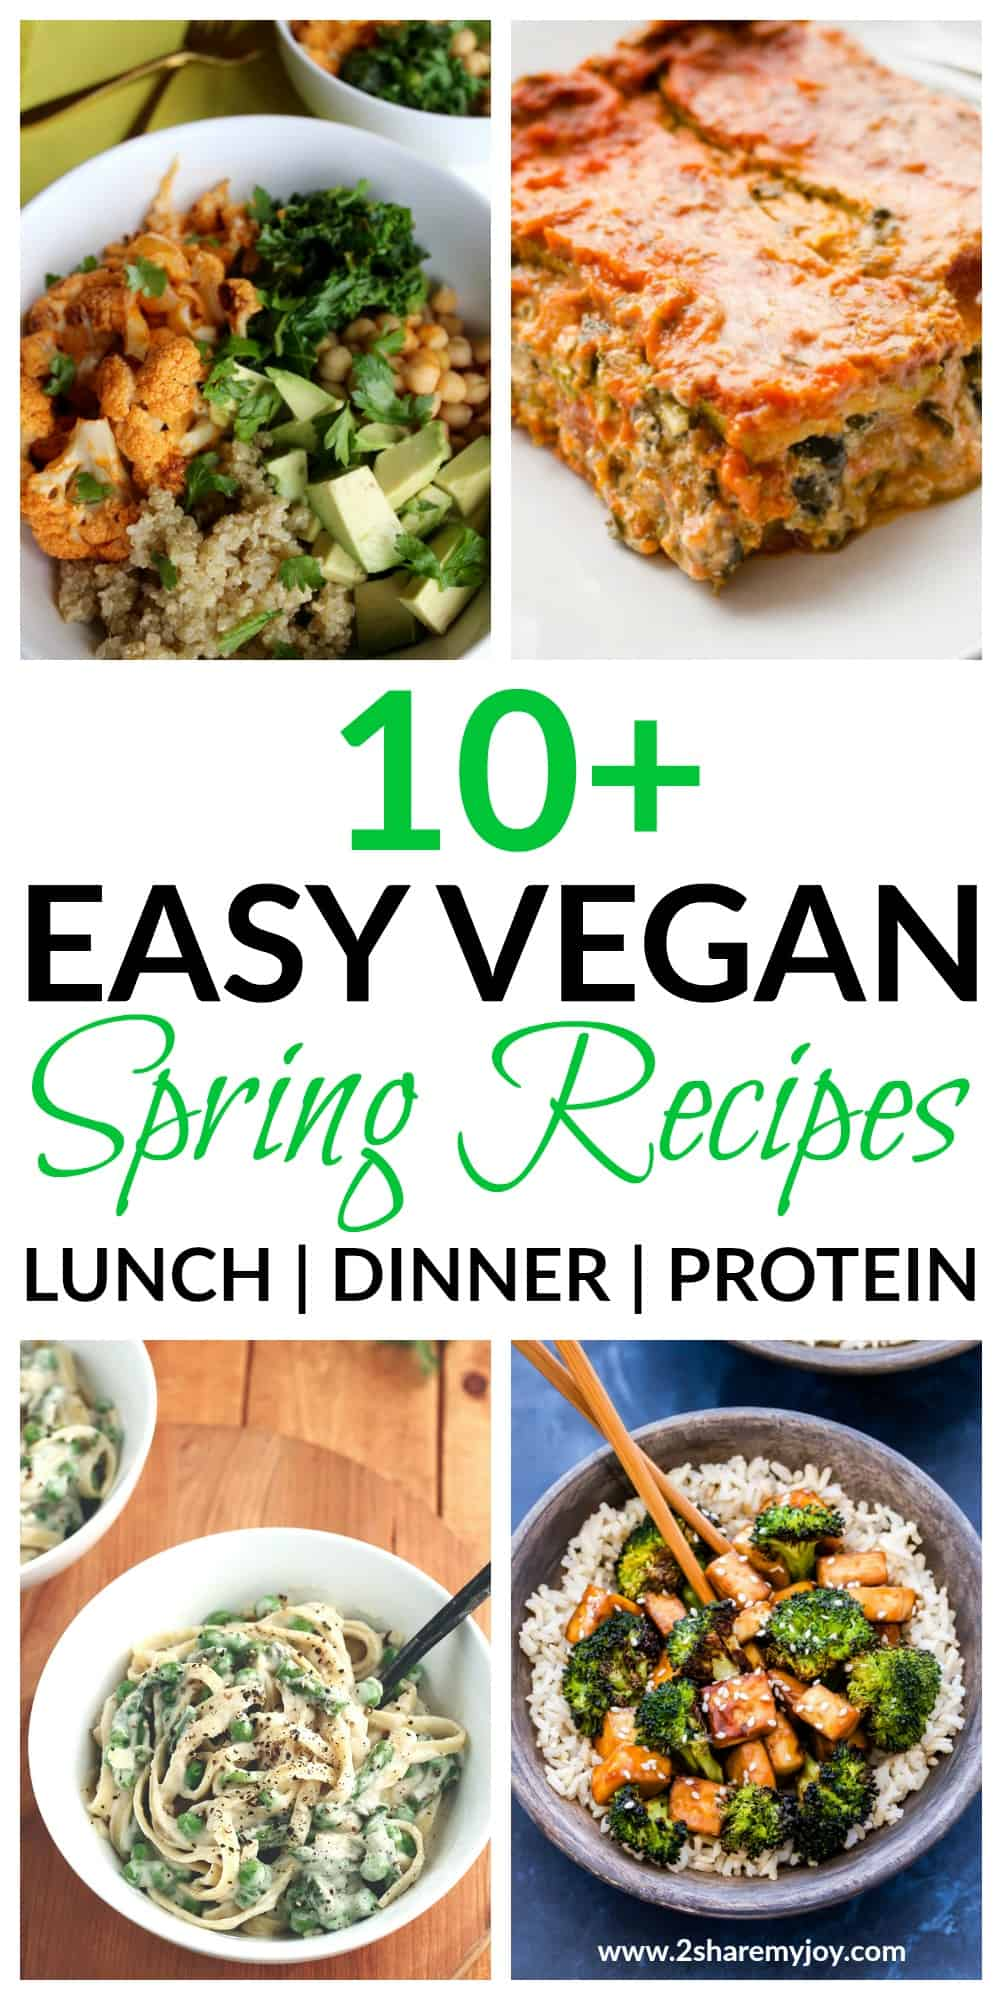 Easy vegan spring recipes for lunch or dinner 2sharemyjoy easy vegan spring recipes for a whole food plant based diet high protein dinner recipes forumfinder Choice Image